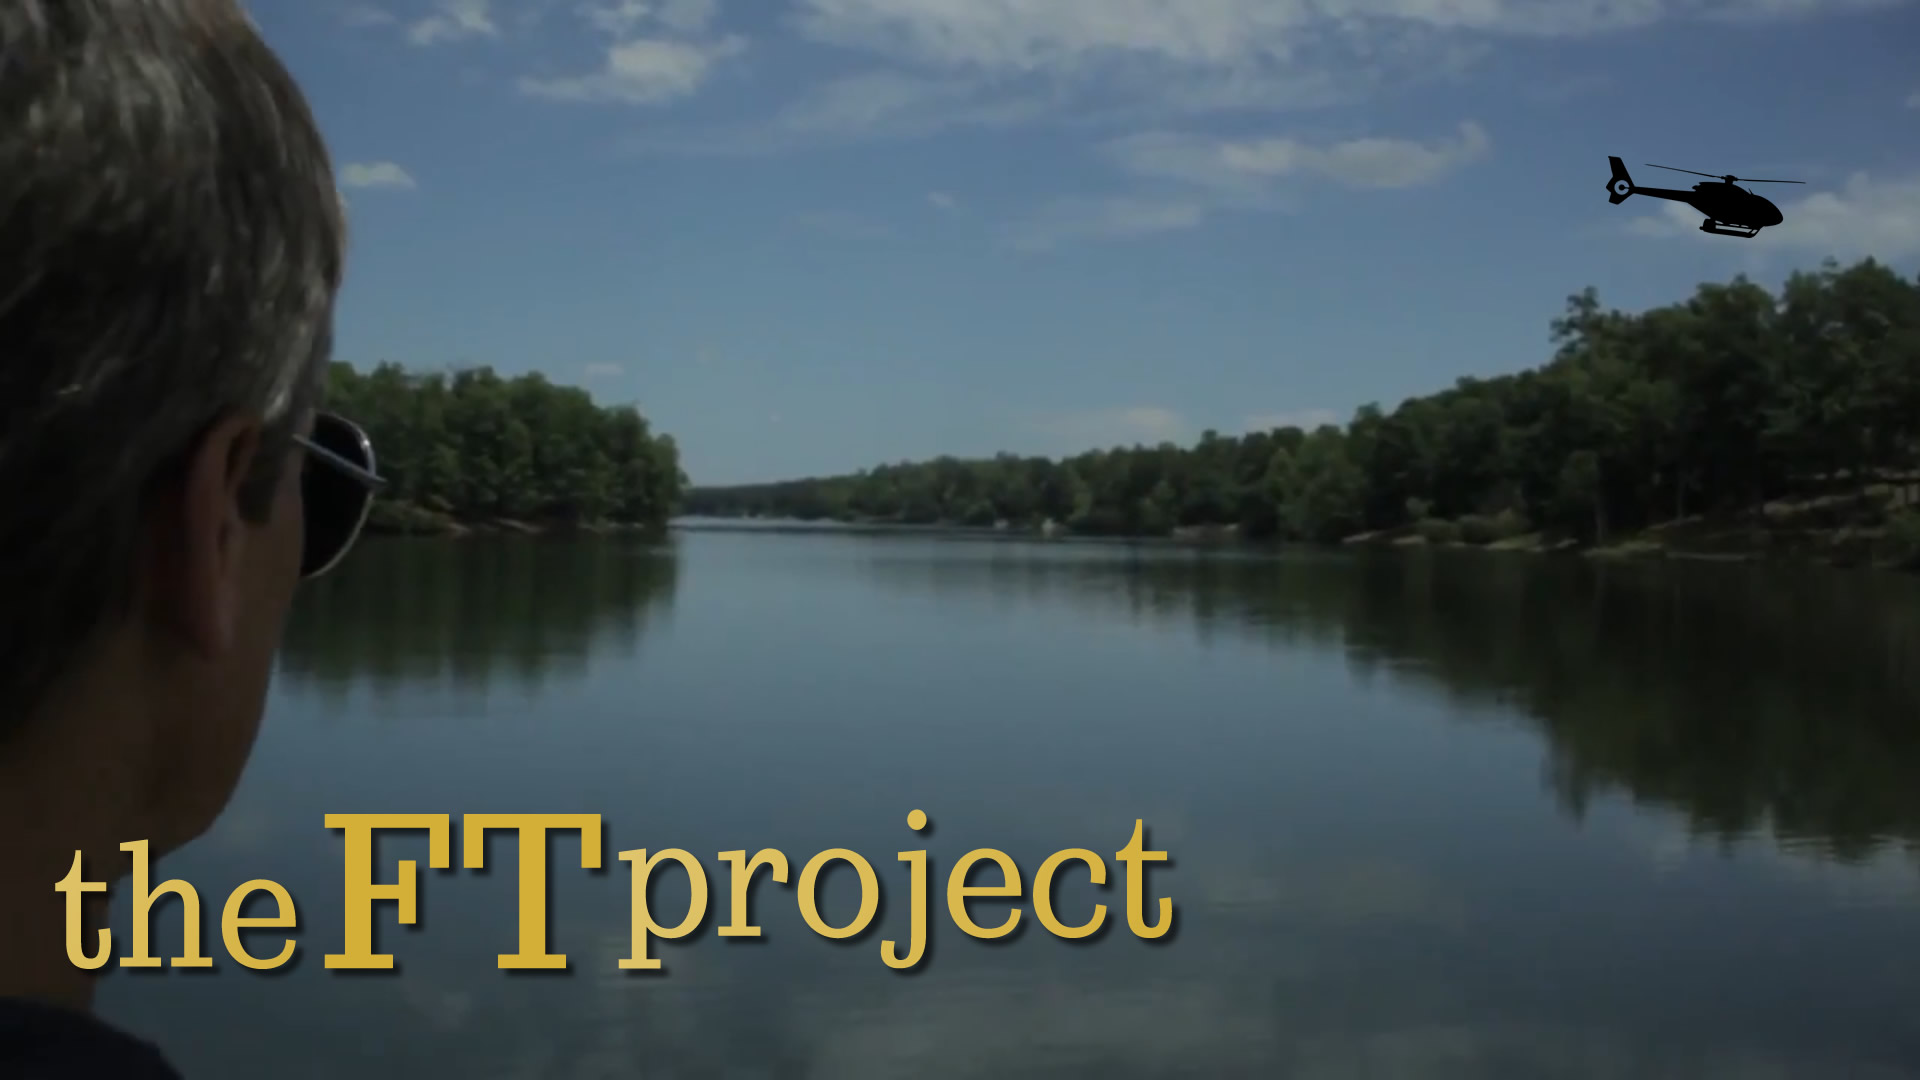 The FTproject